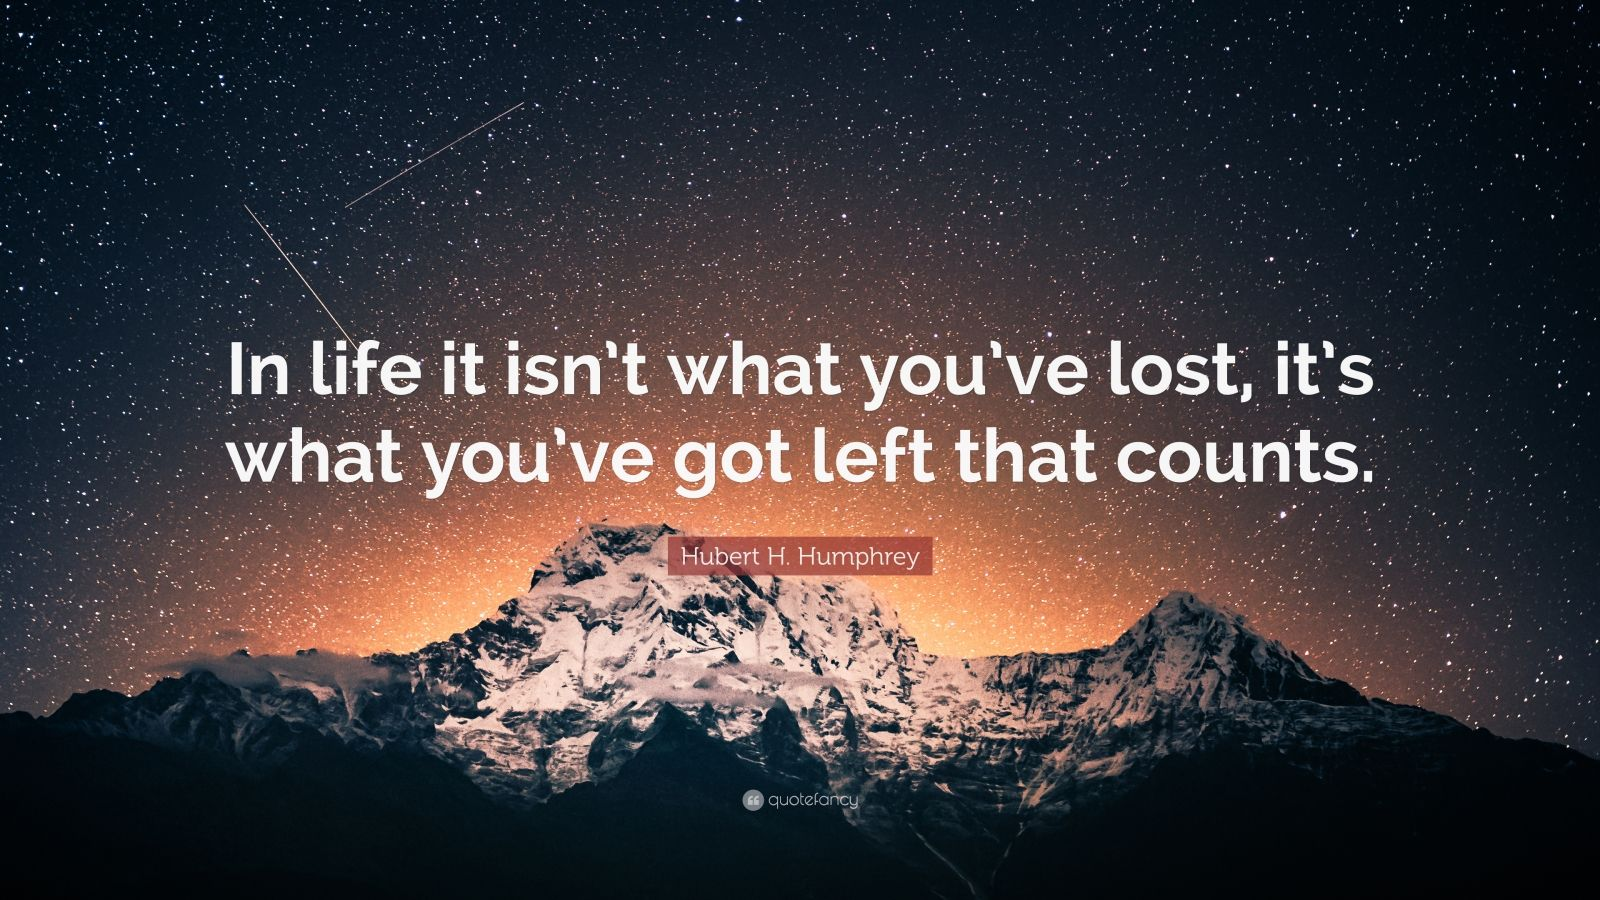 """Hubert H. Humphrey Quote: """"In life it isn't what you've lost, it's what you've got left that counts."""""""